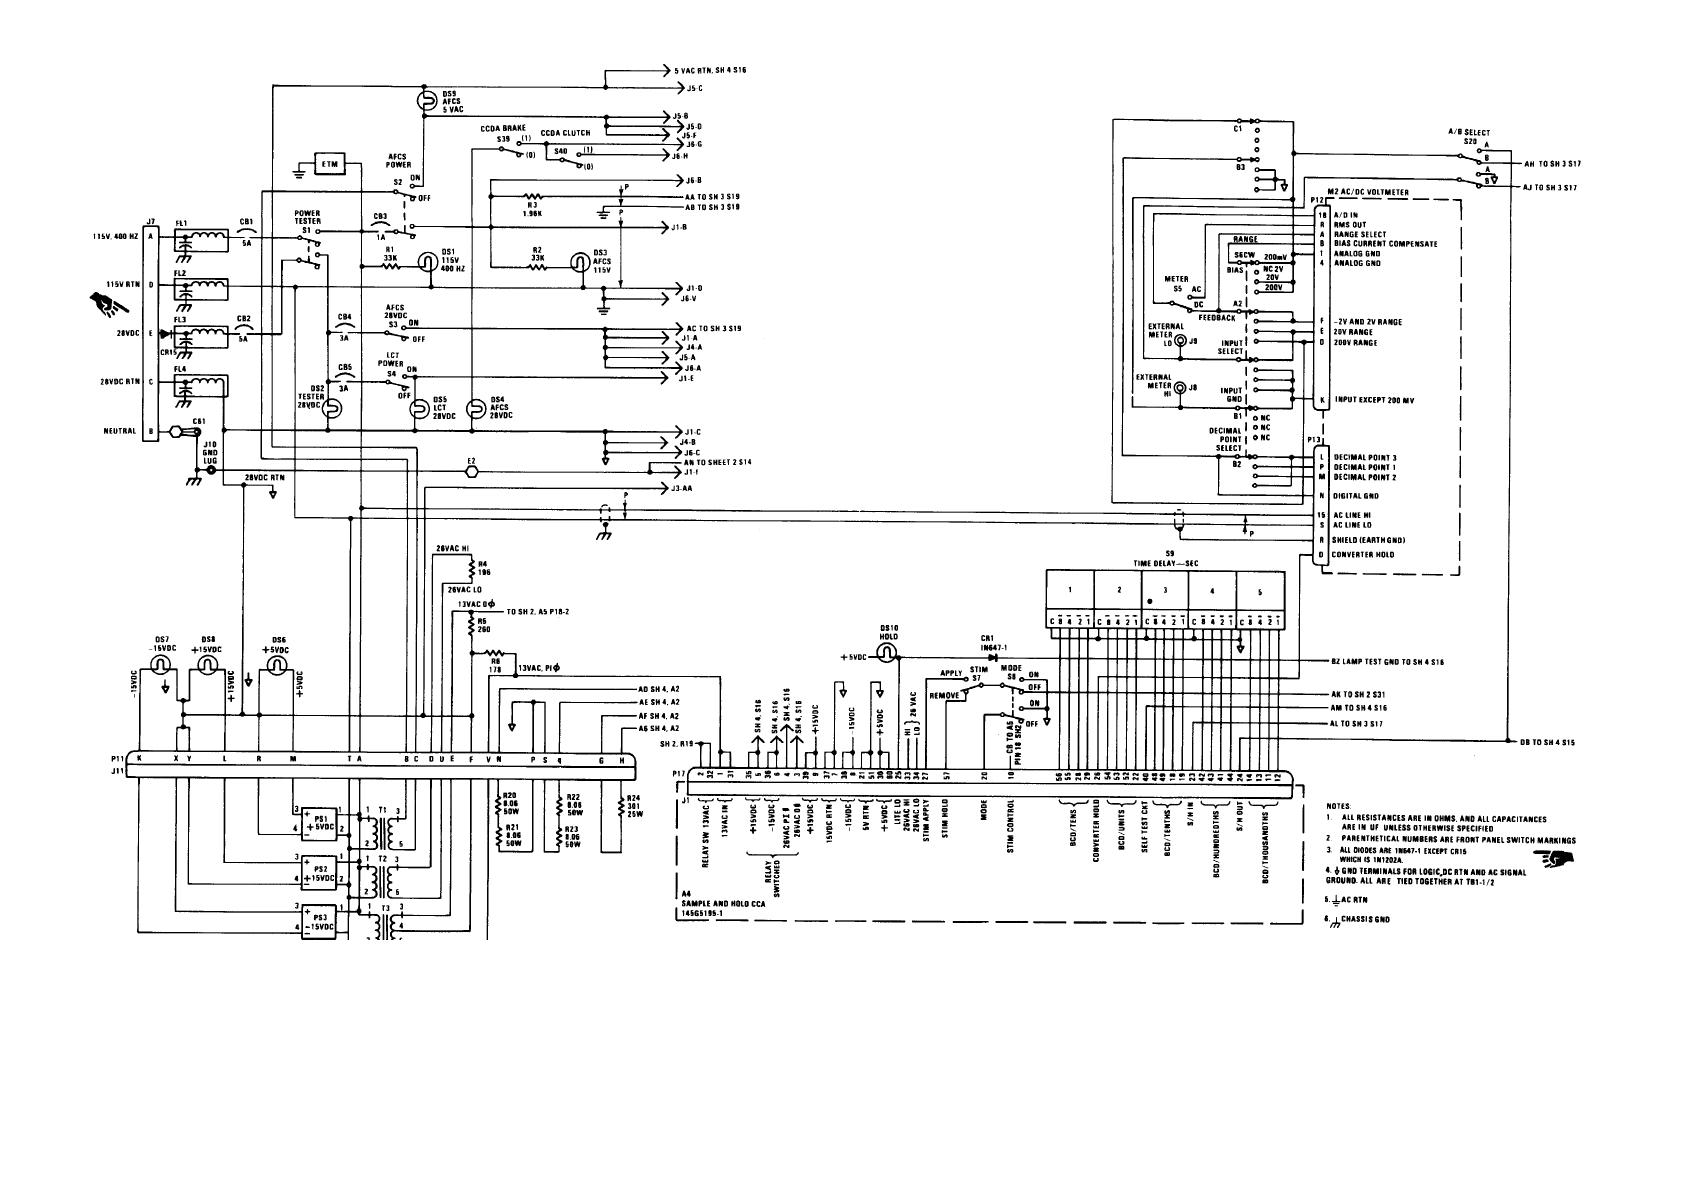 Fo 1 Afcs Bench Test Set Schematic Diagram Sheet 1 Of 4